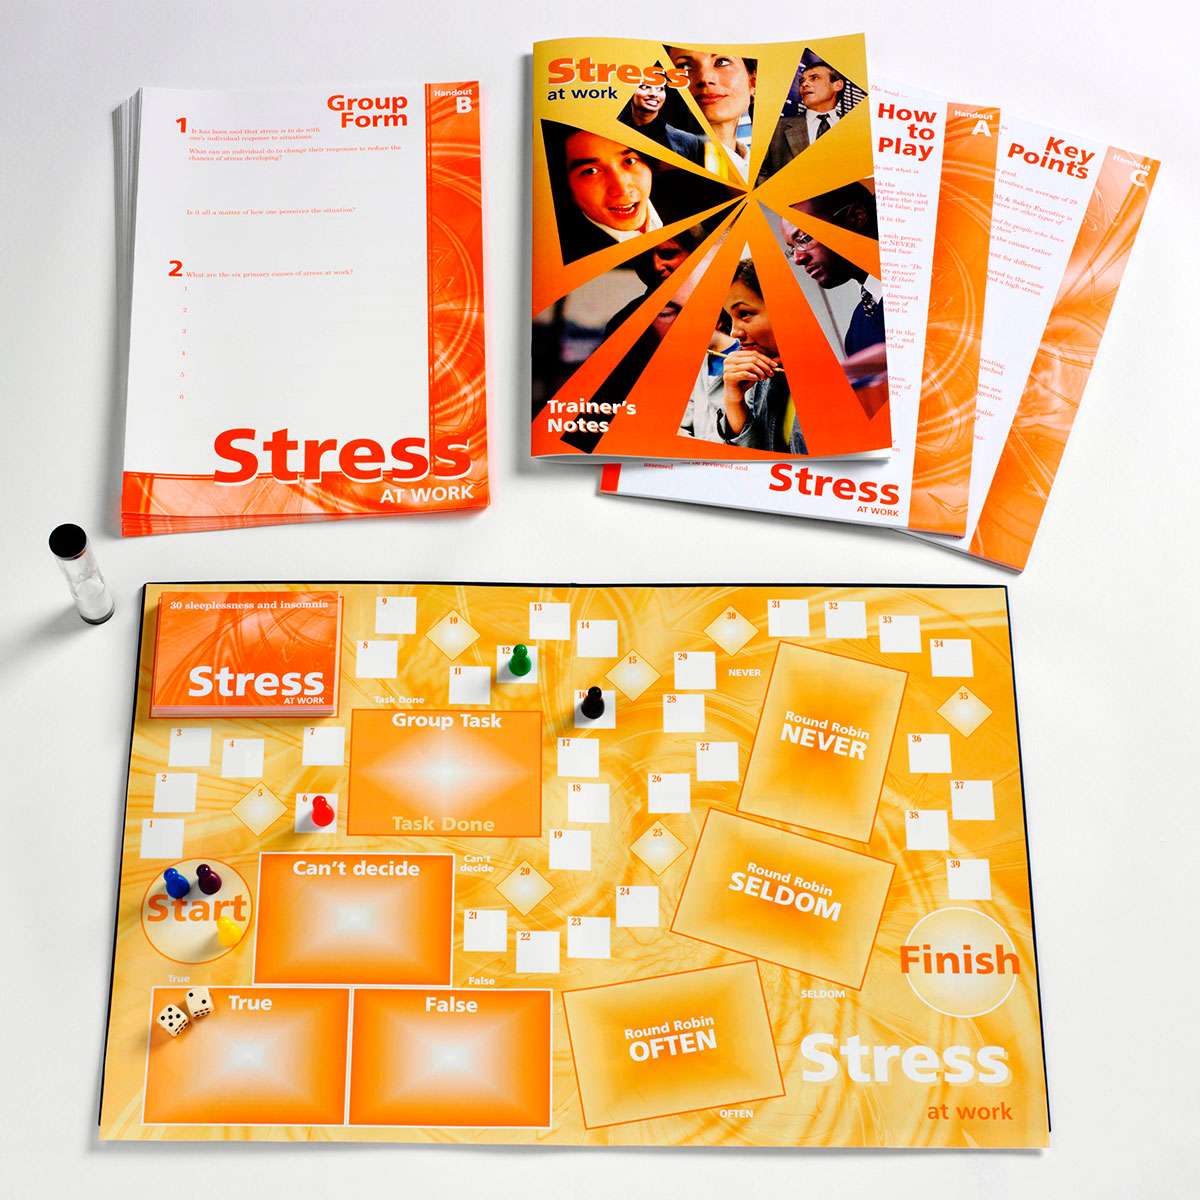 Preventing Stress at Work | Stress Management Training Activity